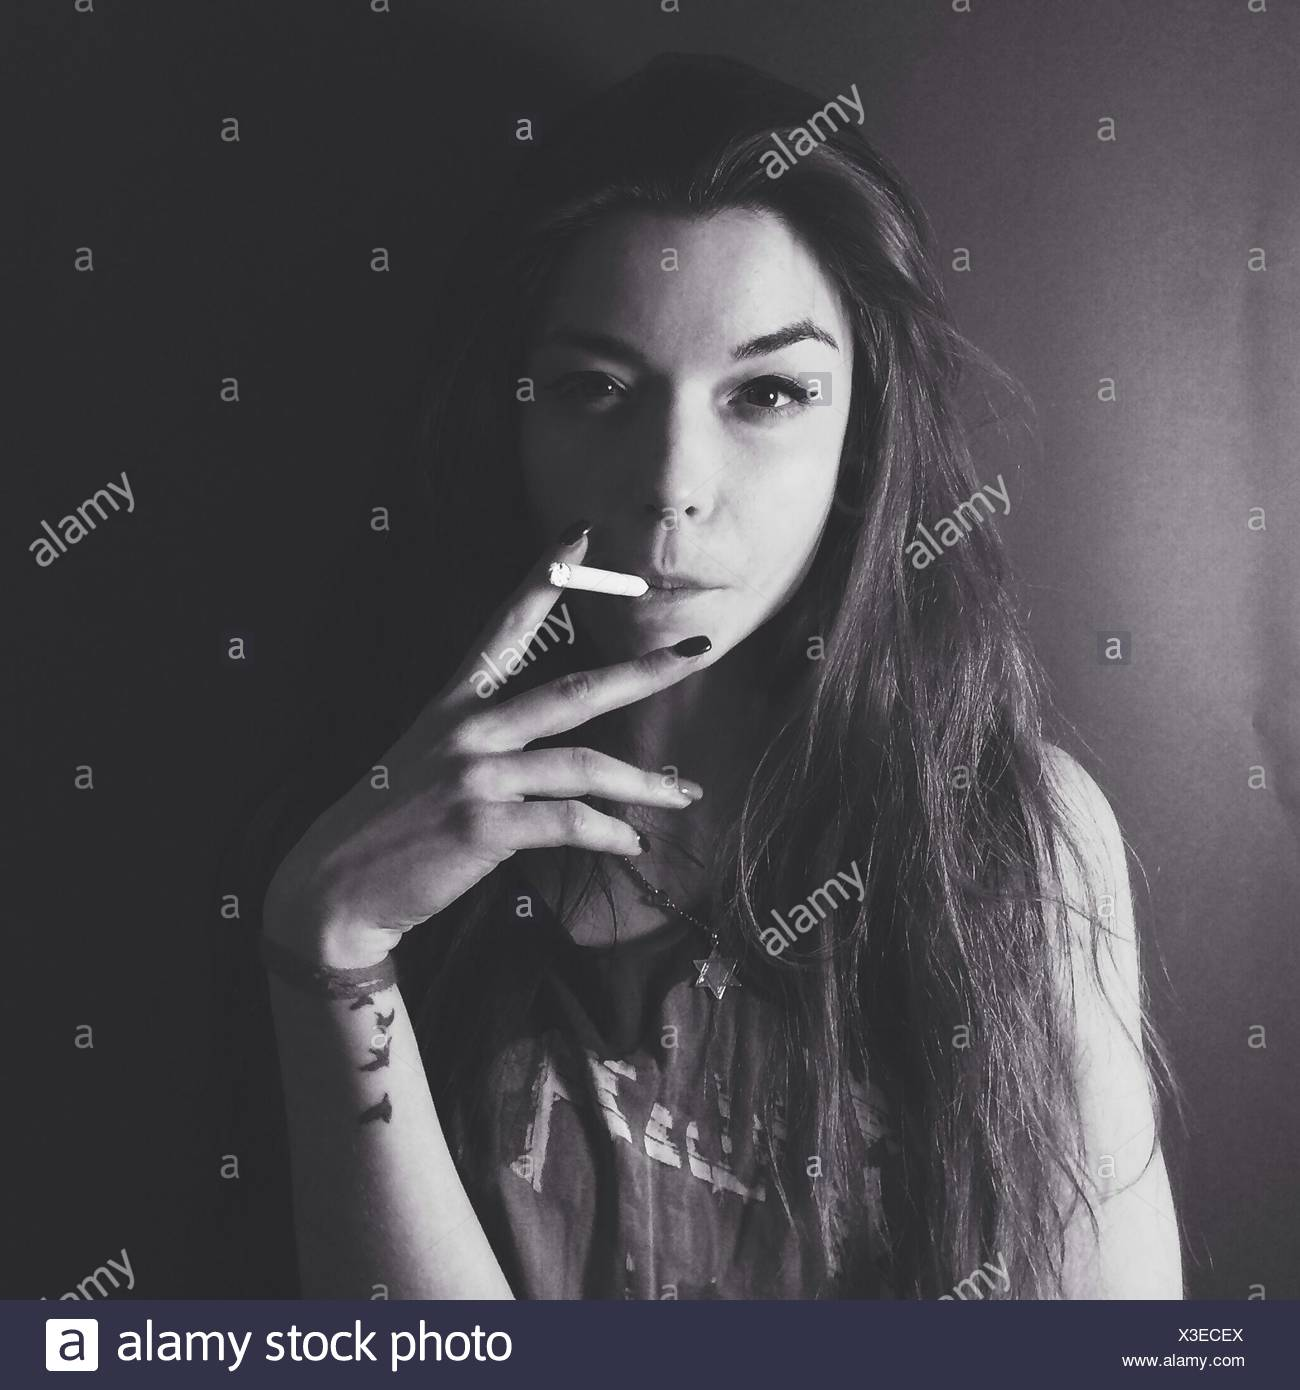 Portrait Of Young Woman Smoking Against Plain Background - Stock Image